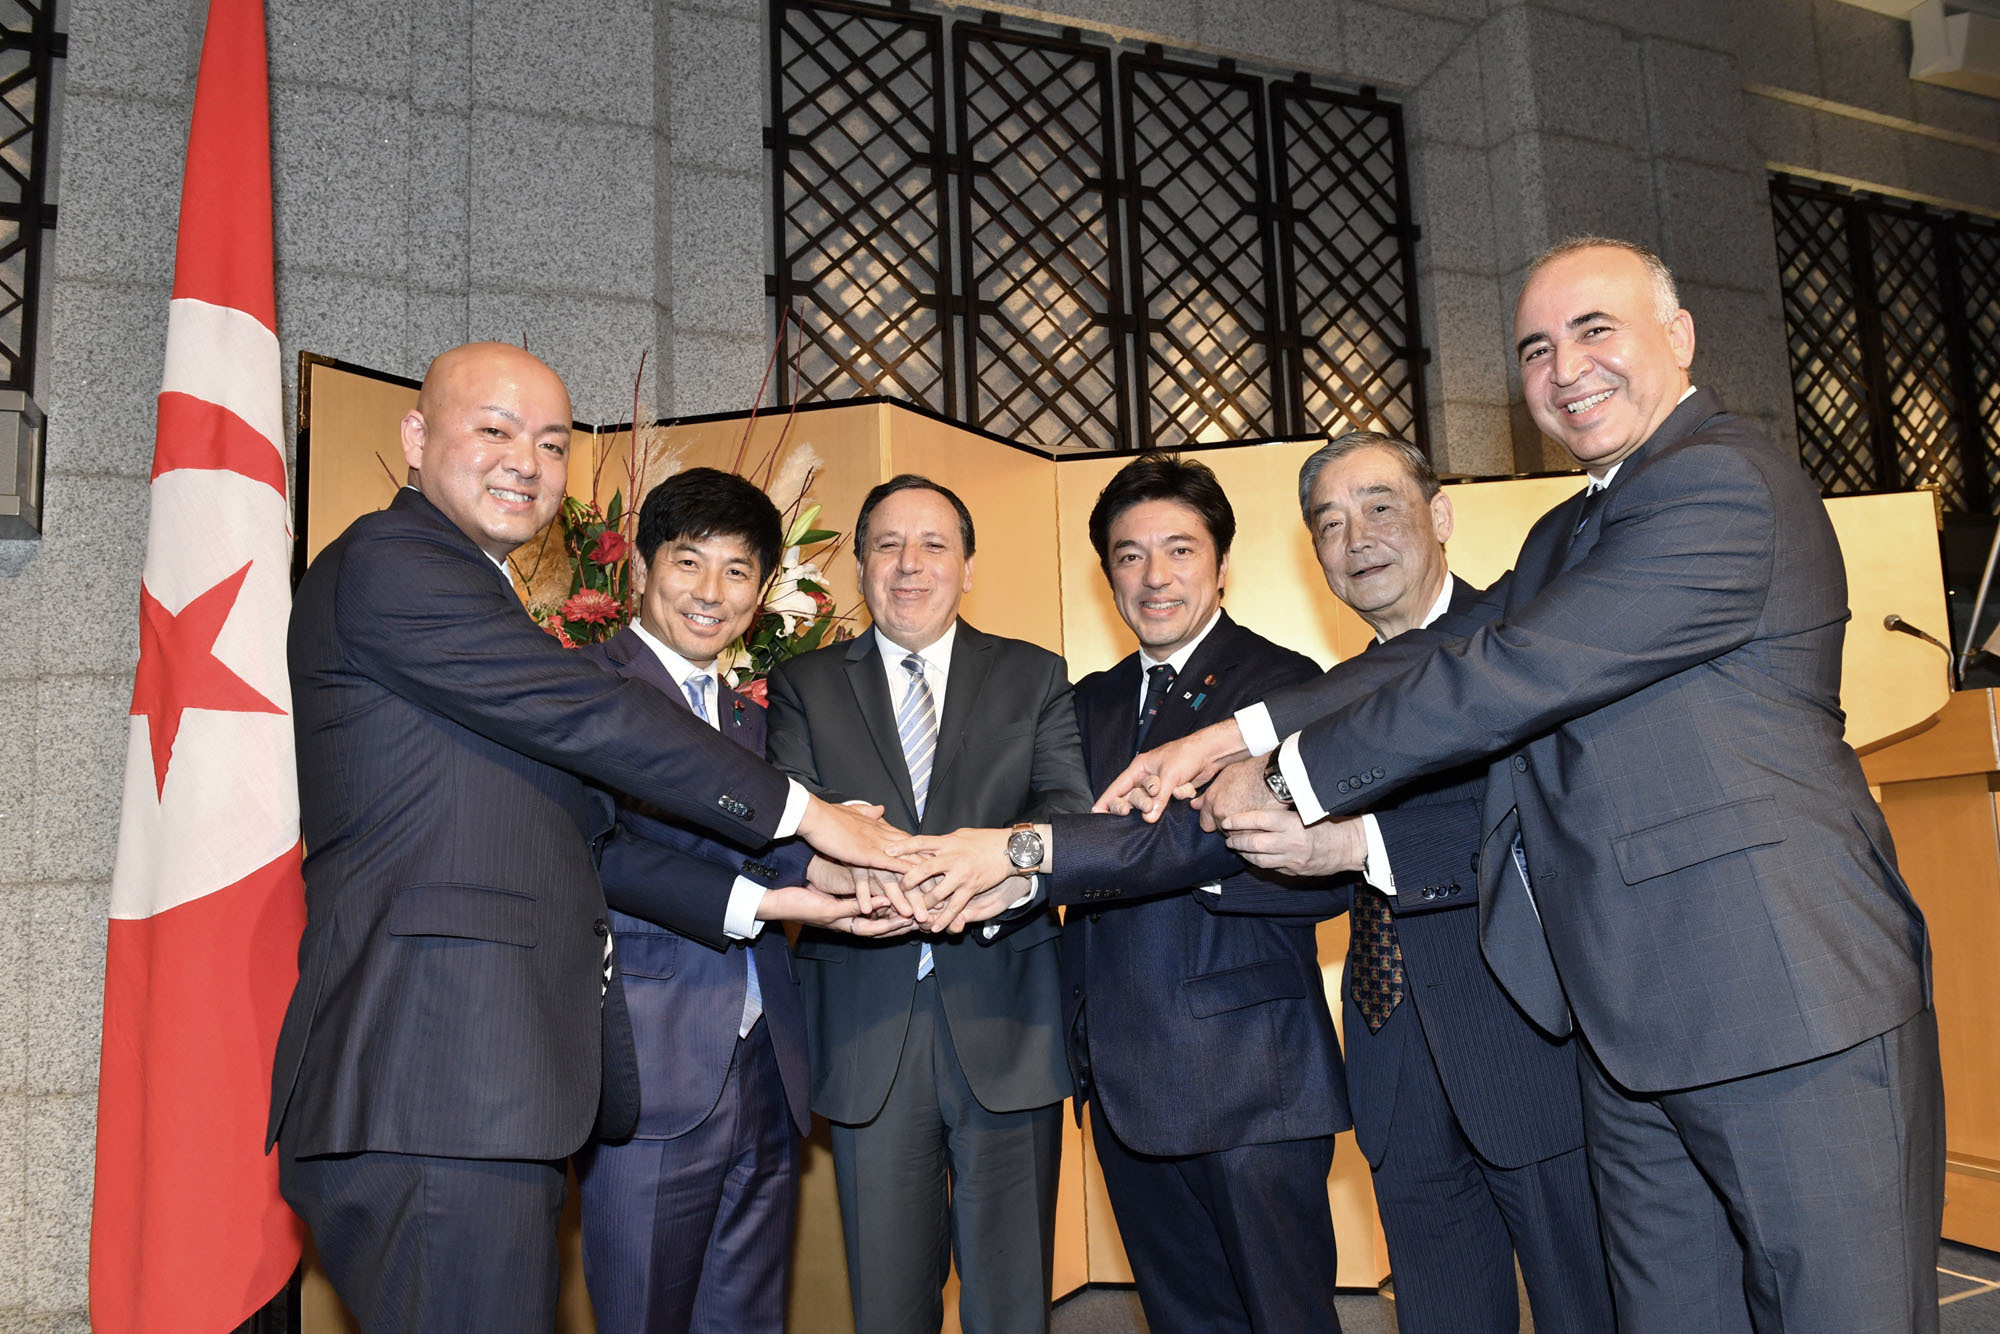 Tunisian Foreign Minister Khemaies Jhinaoui (third from left) poses with (from left) Manabu Horii, parliamentary vice-minister for foreign affairs; State Minister Kazuyuki Nakane; Yasuhide Nakayama, director-general of the Japan-Tunisia Parliamentary Committee; Shinsuke Okuno, a member of the Japan-Tunisia Parliamentary Committee; and Tunisian Ambassador Karis Darrag during a reception at Hotel Okura Tokyo on Oct. 25. |   YOSHIAKI MIURA